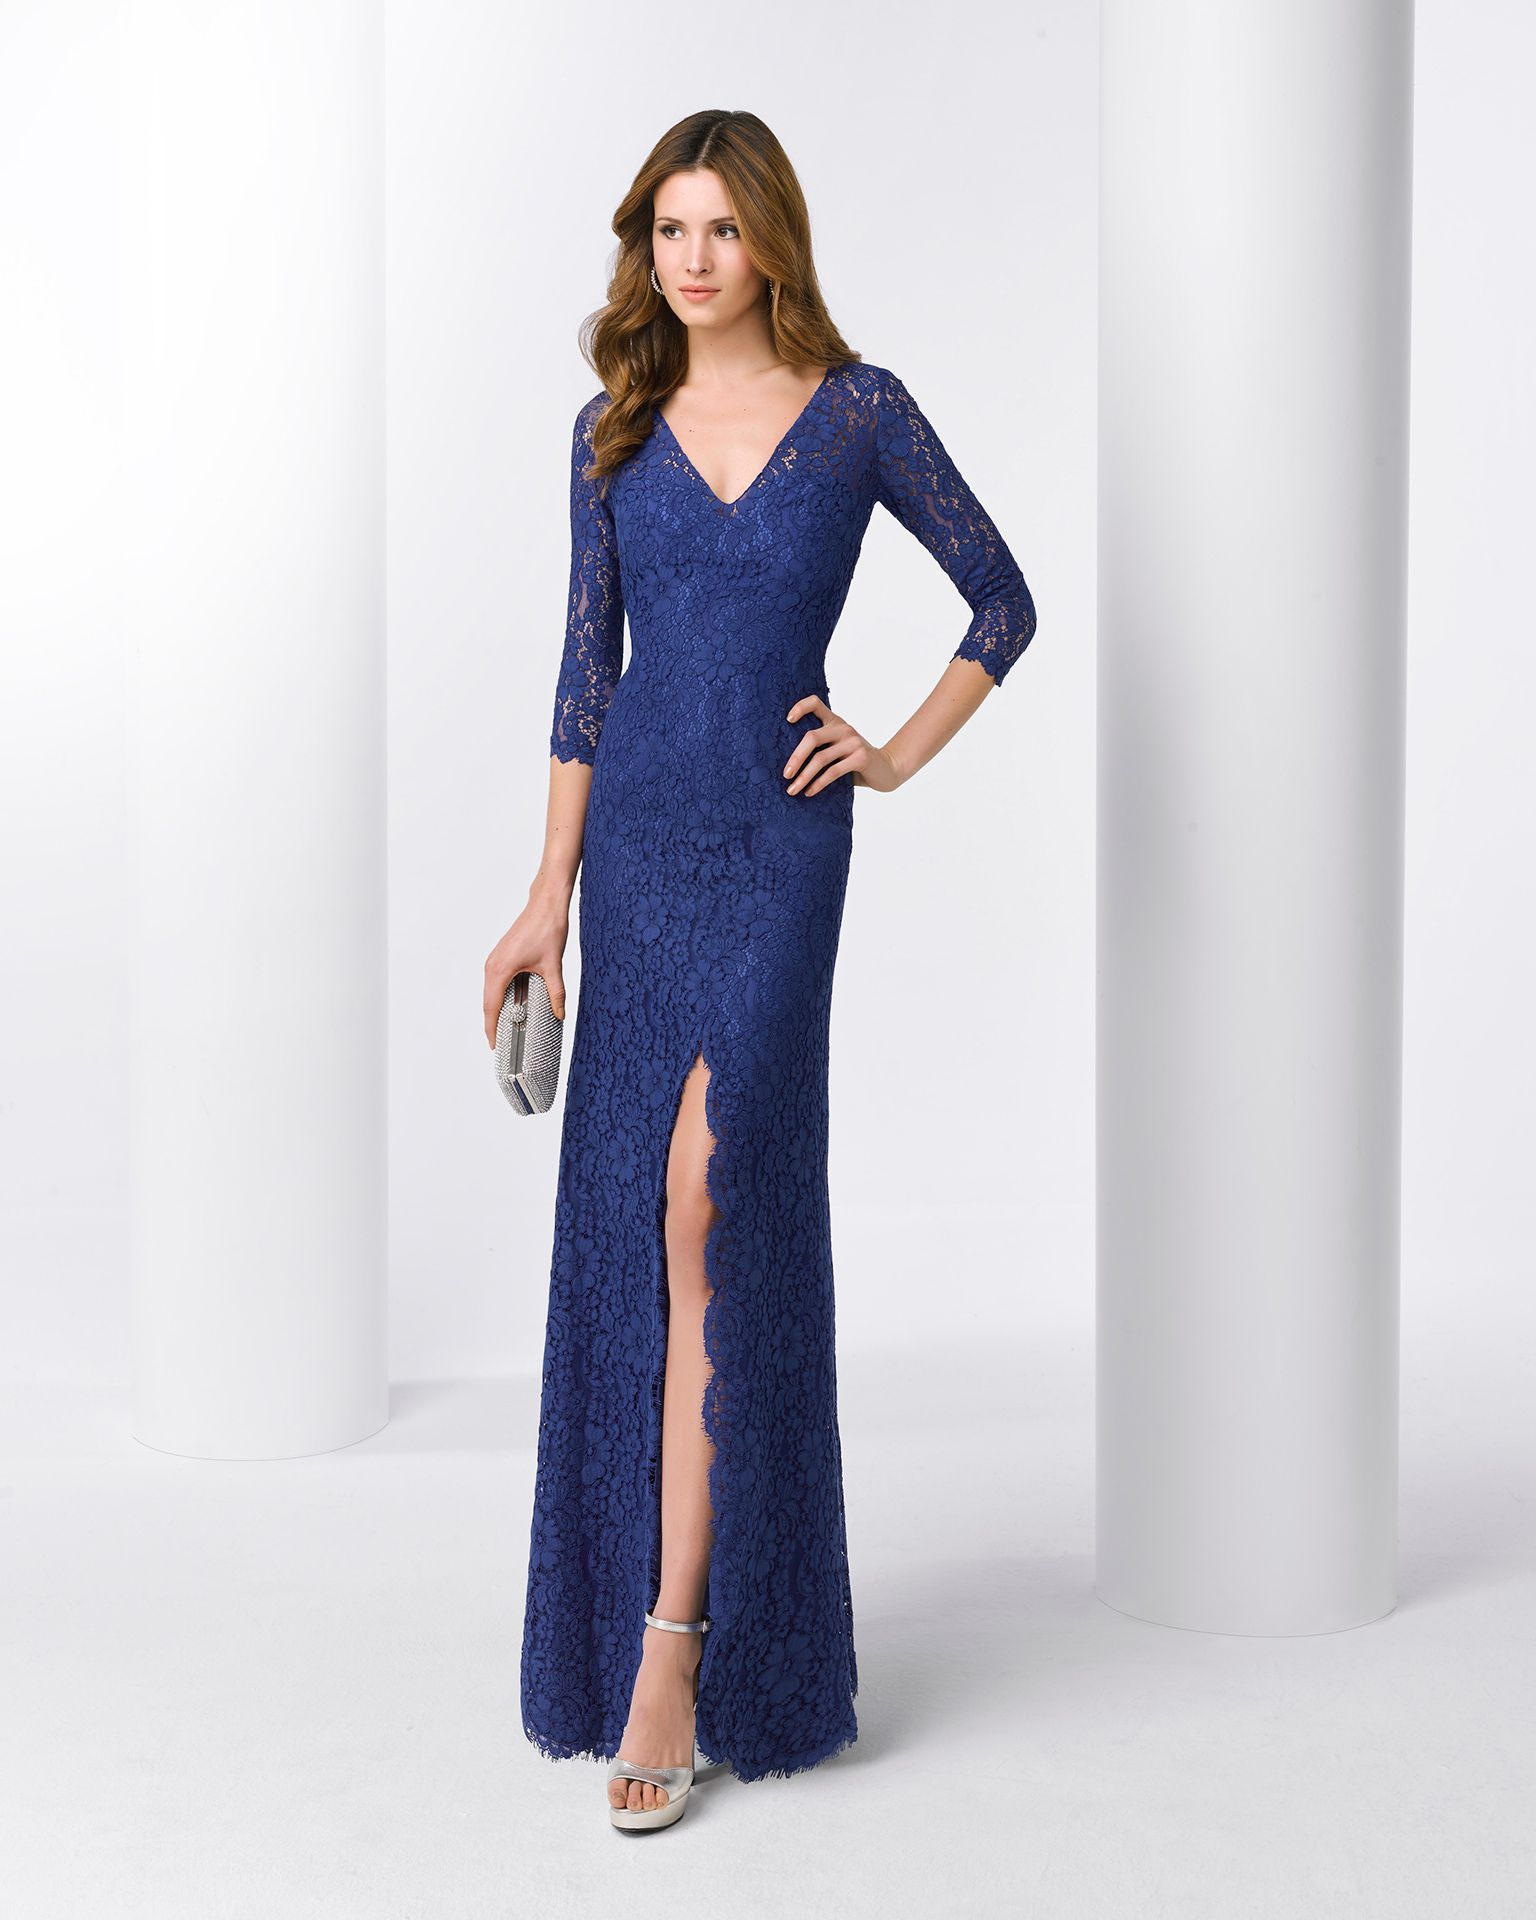 Lace cocktail dress with long sleeves and vneckline available in